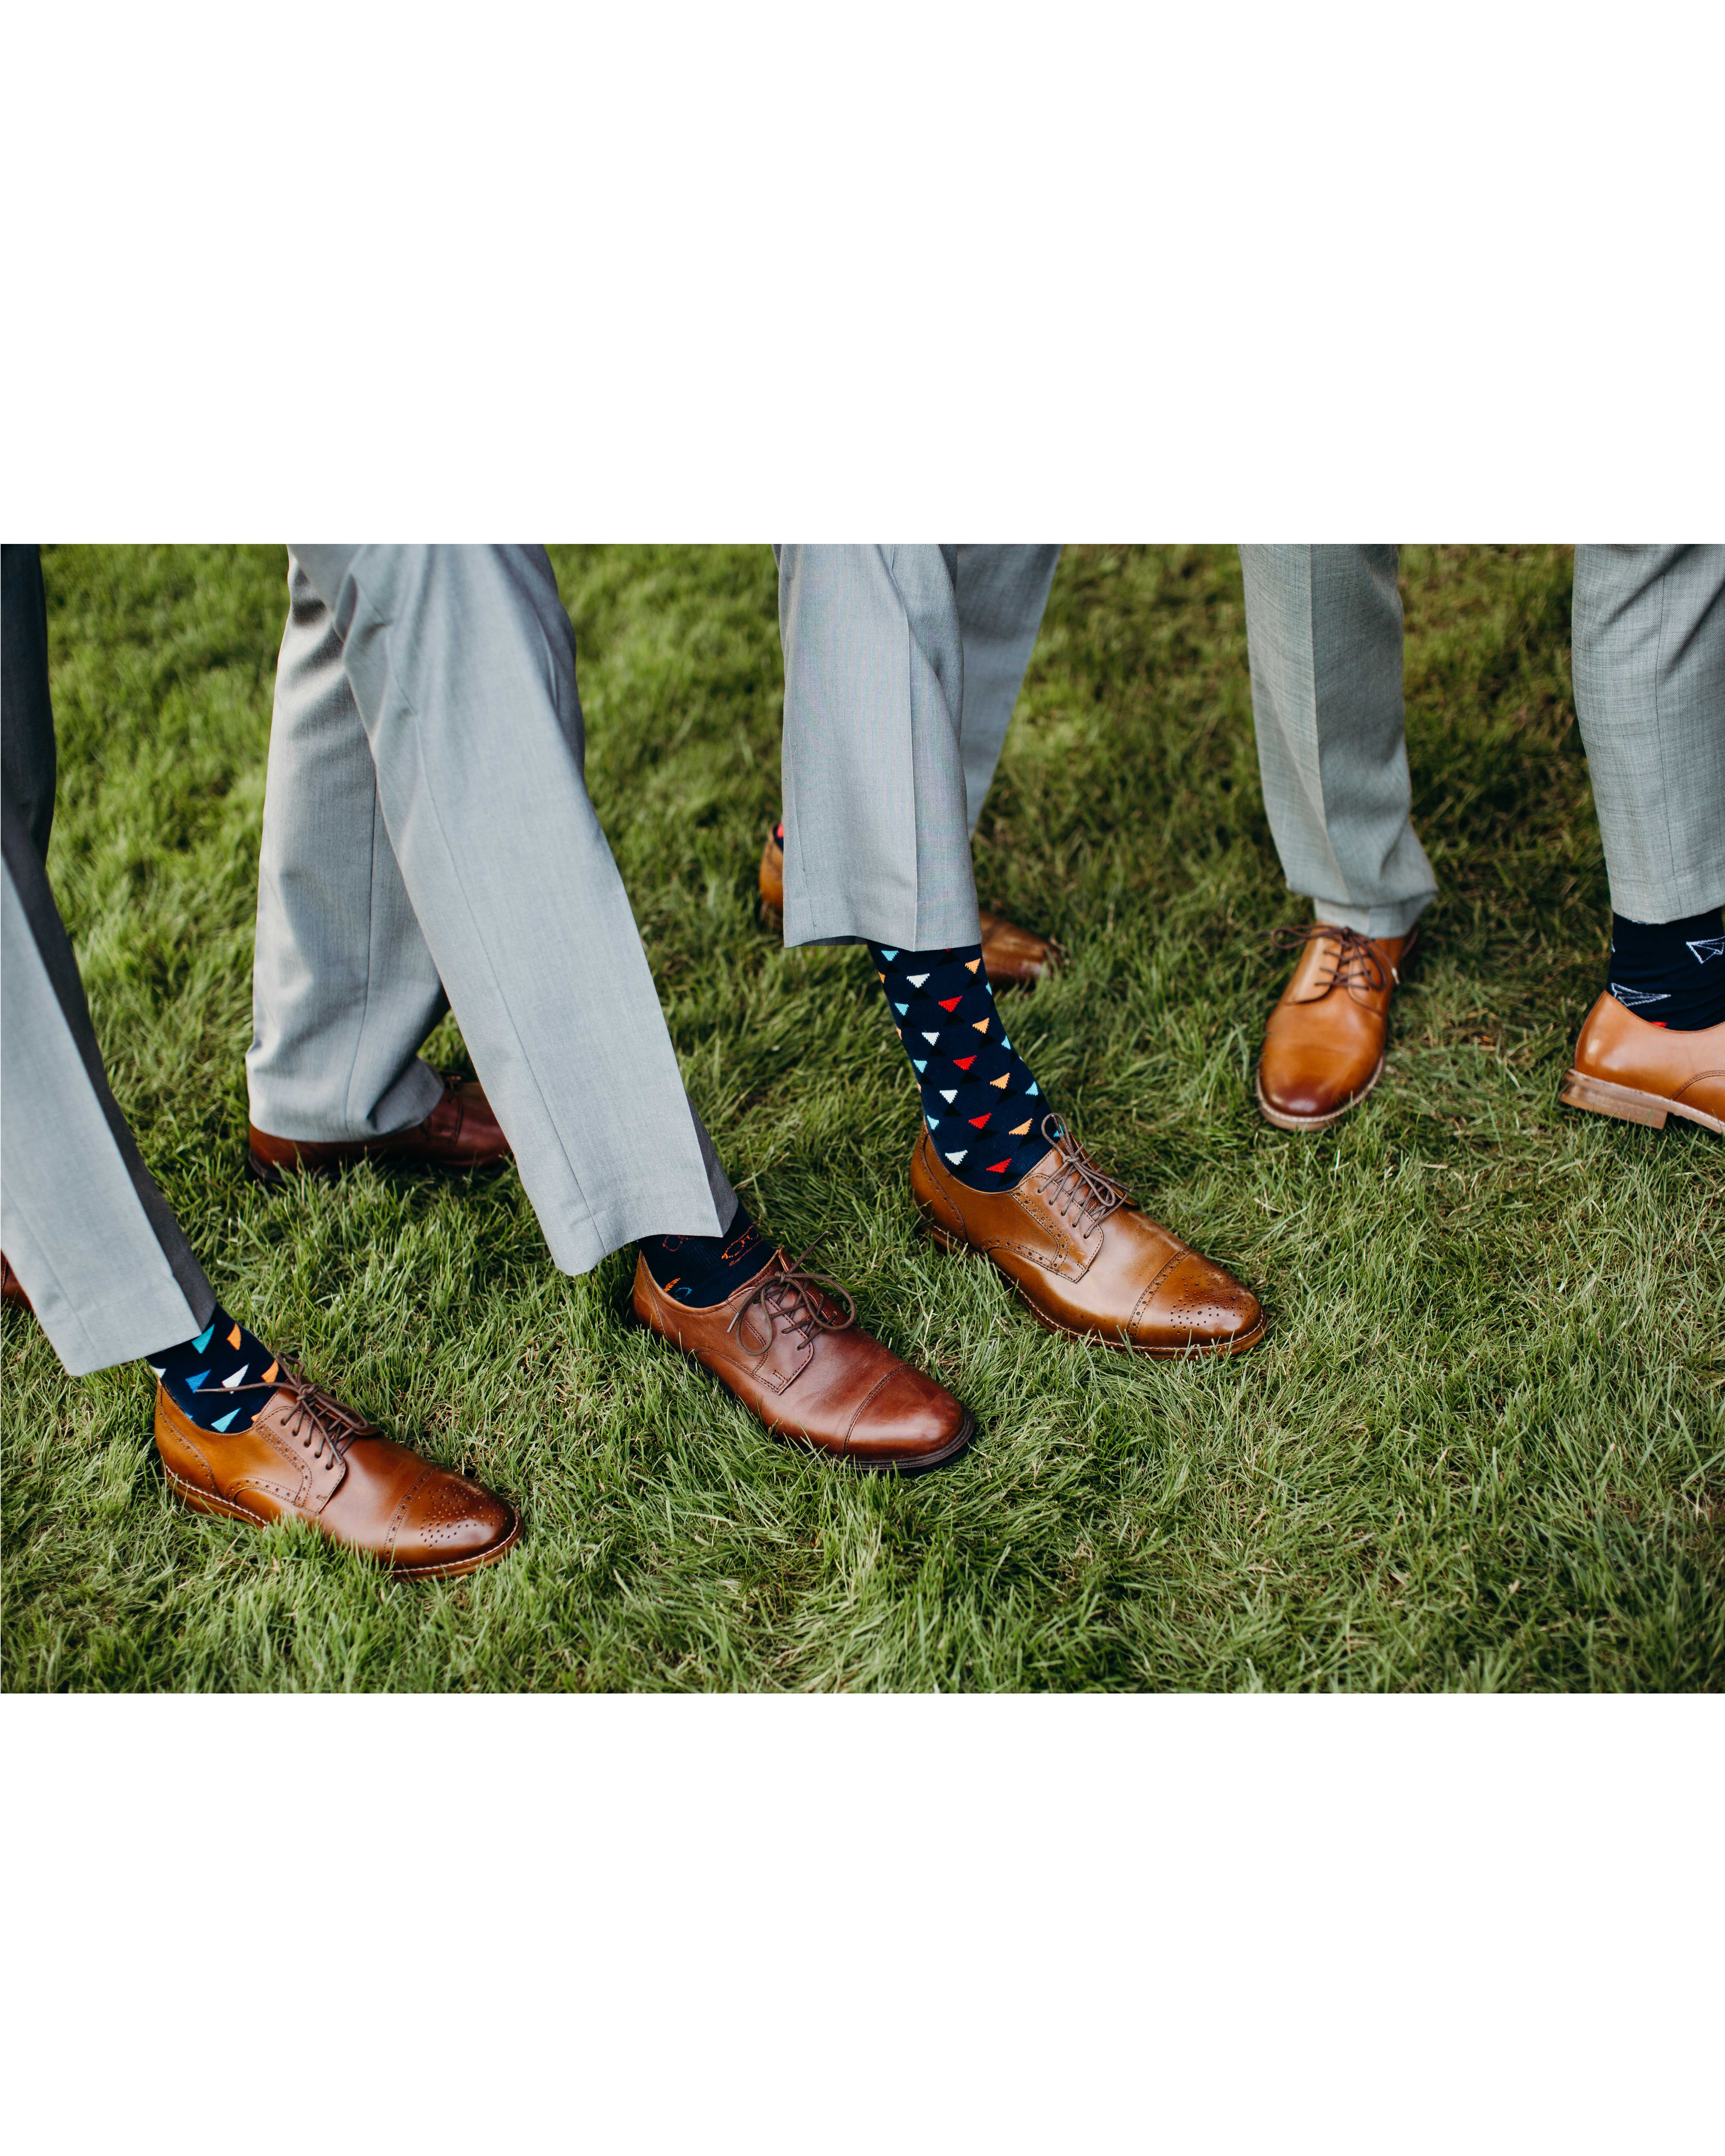 groomsmen wedding socks